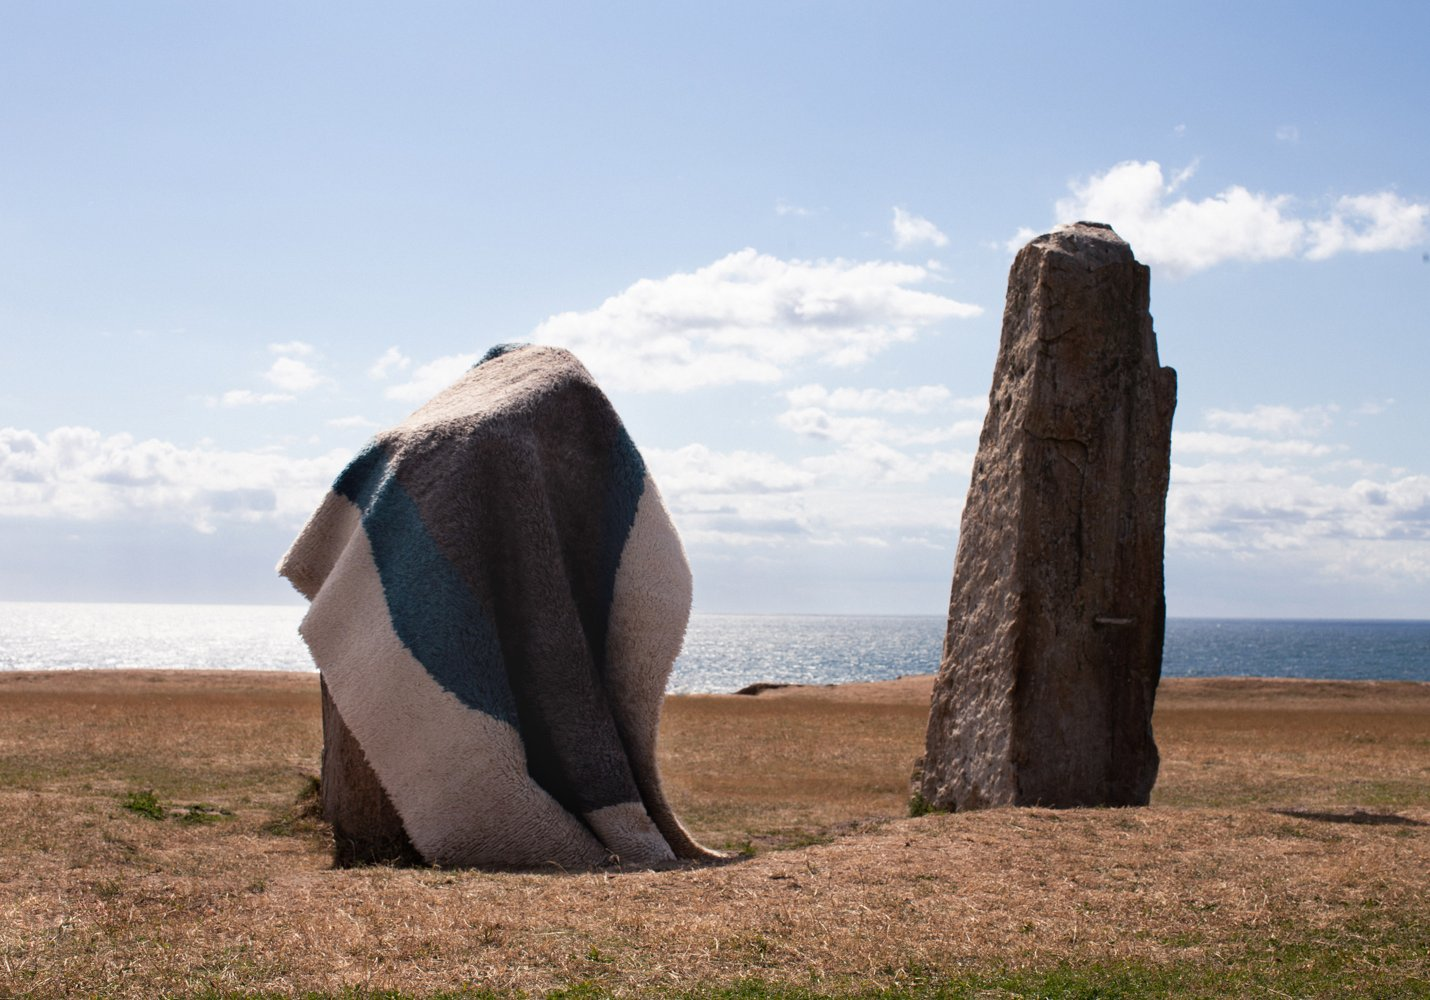 Monolith displayed on Ale stones in Skåne County, Sweden.